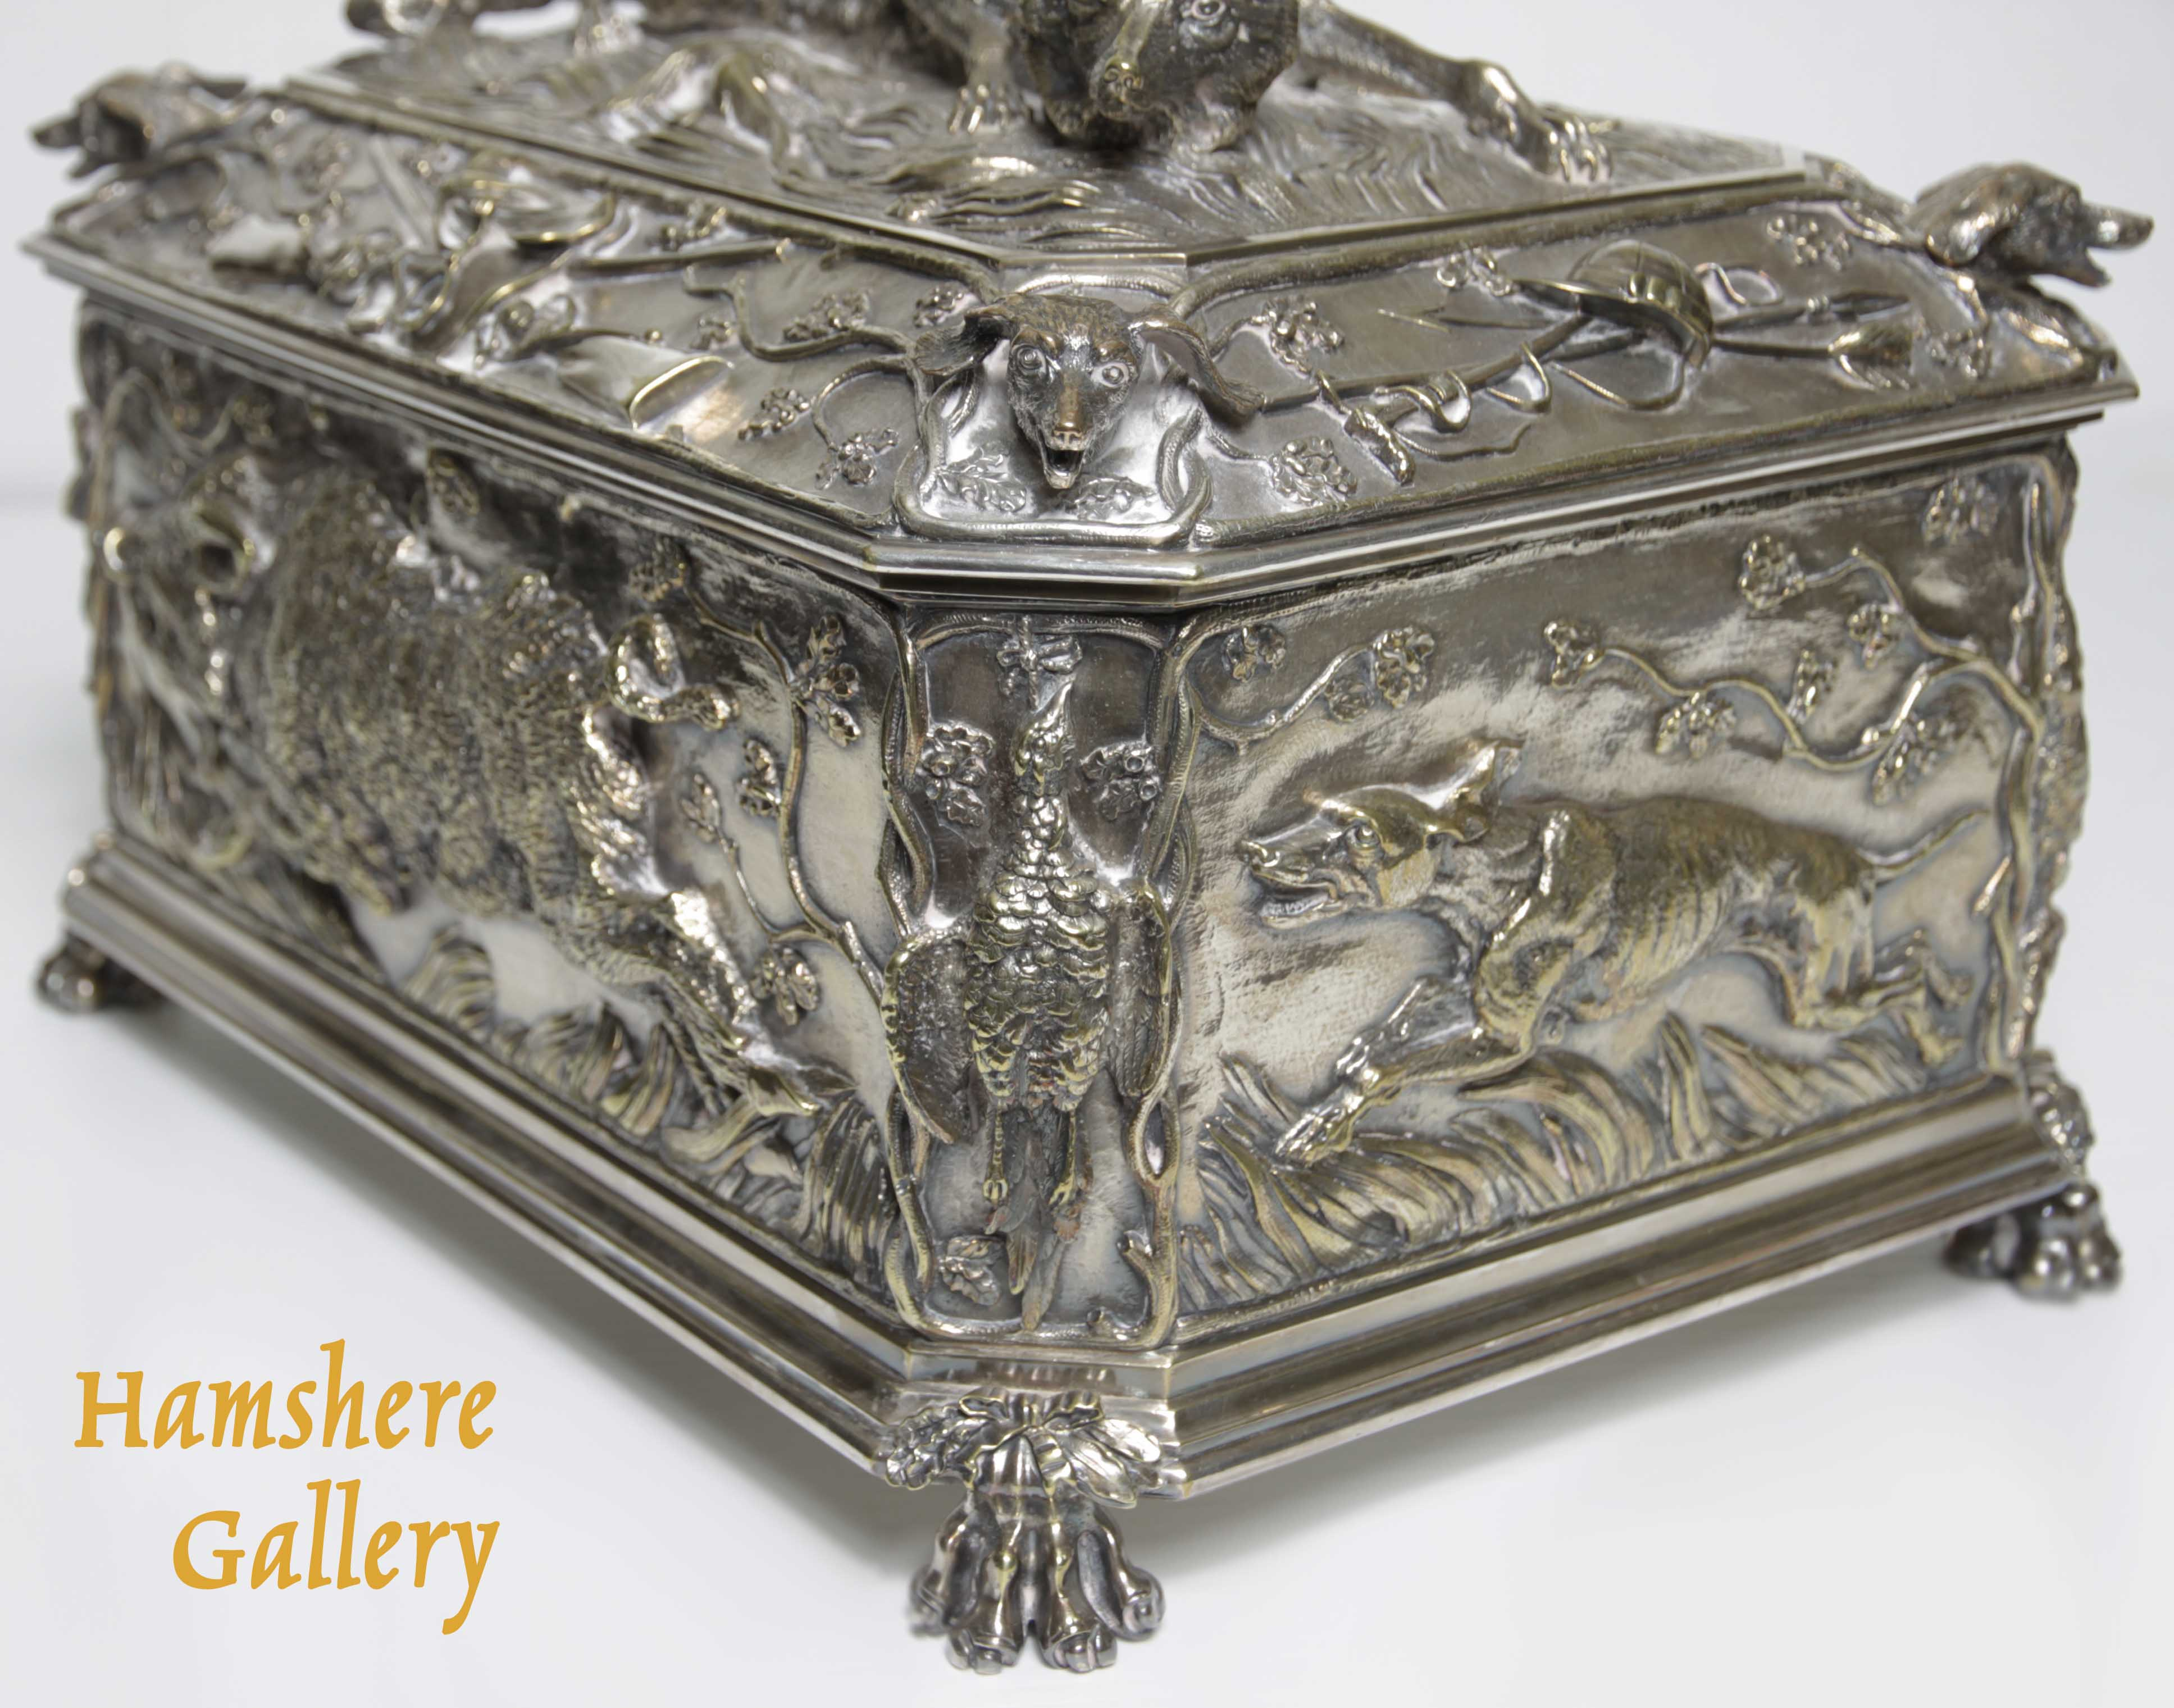 """Click to see full size: A very large, French, 19th century, silver bronze hunting / """"La Chasse"""" jewellery box / casket of boar, fox, hound and game bird, attributable to Jules Moigniez (French, 1835-1894)- A very large, French, 19th century, silver bronze hunting / """"La Chasse"""" jewellery box / casket of boar, fox, hound and game bird, attributable to Jules Moigniez (French, 1835-1894)"""